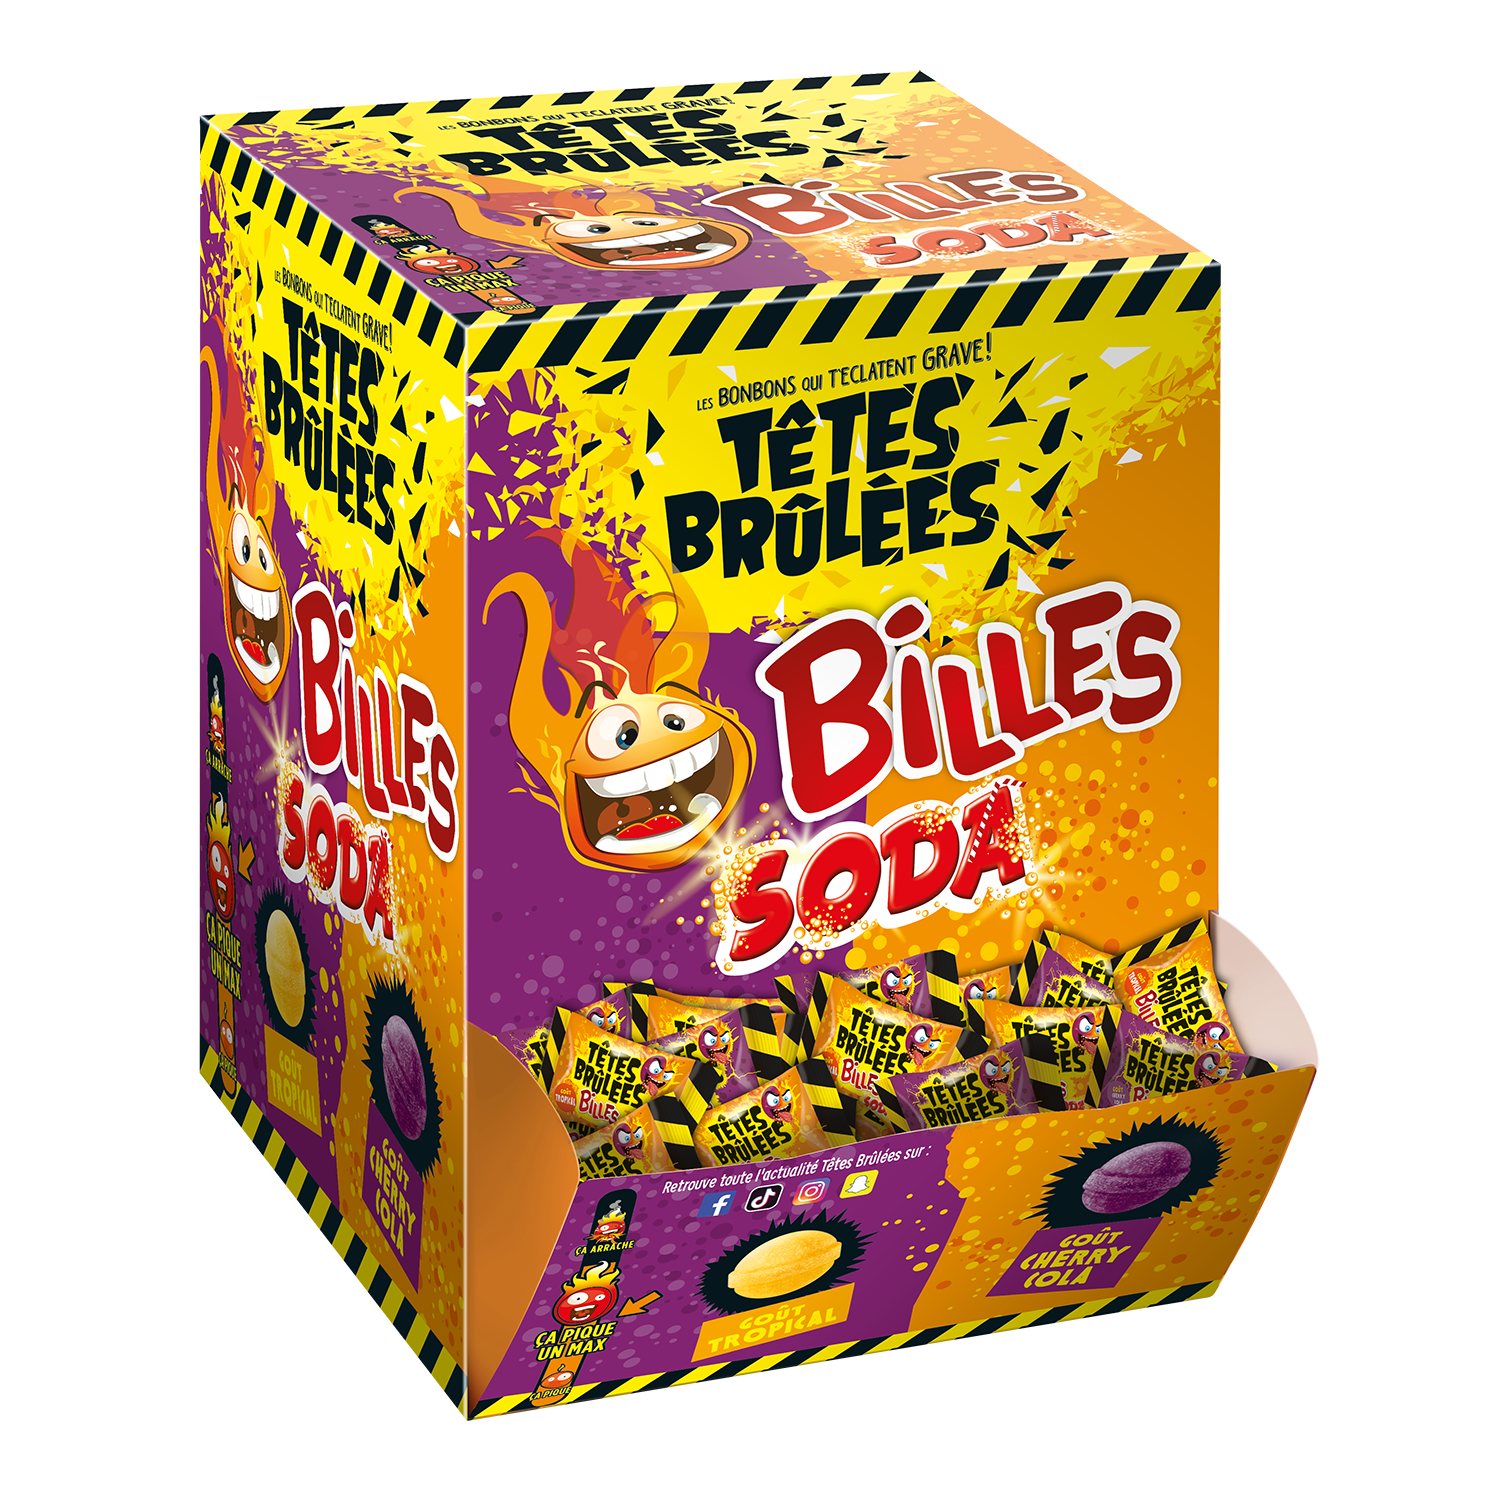 tetes brulees cola 300 pieces